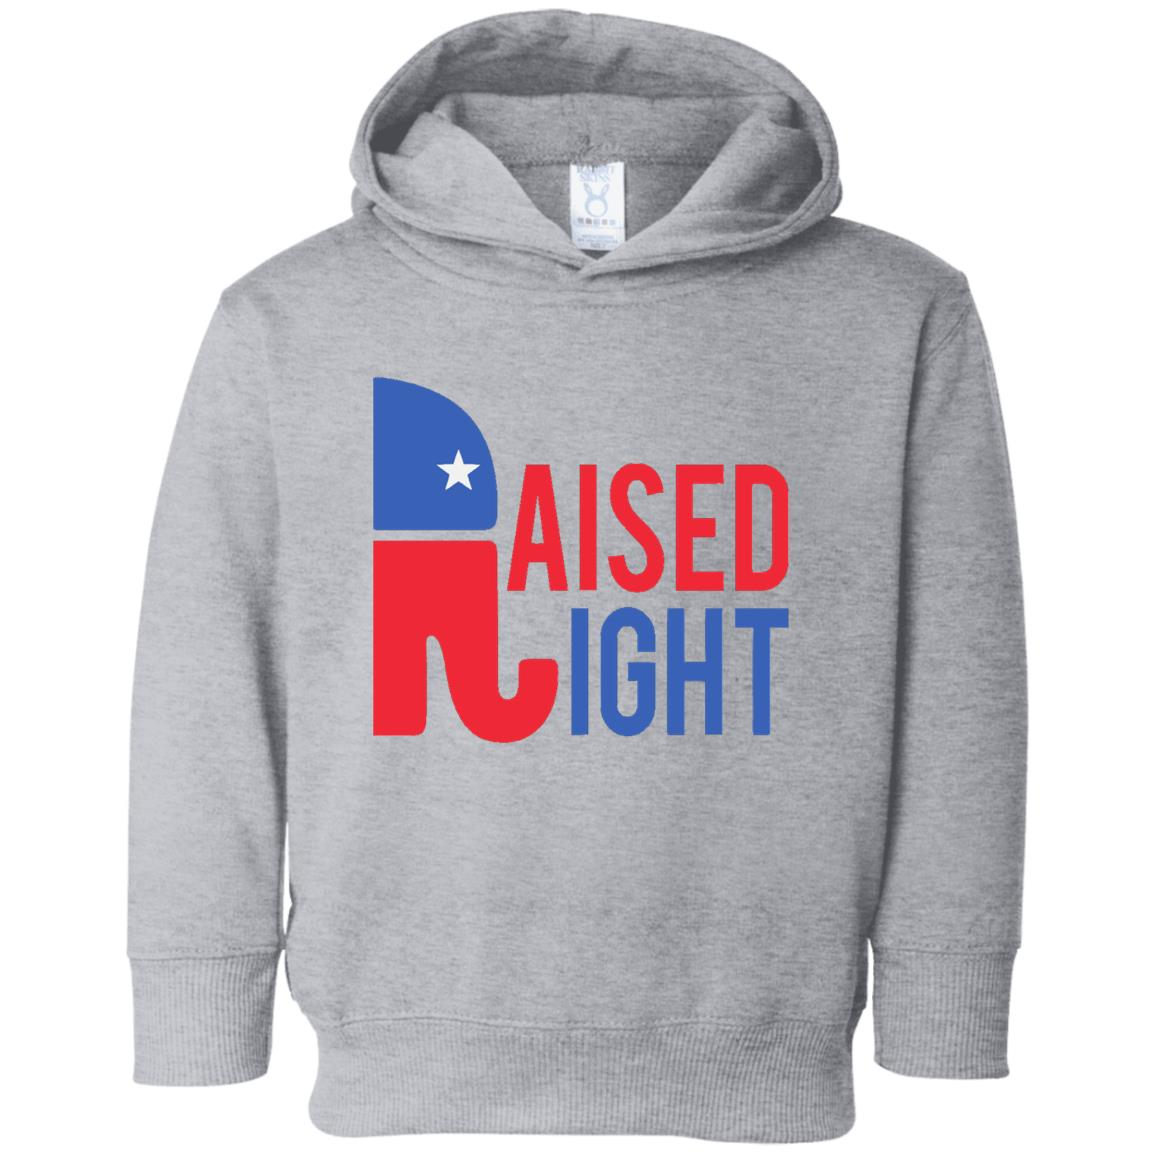 Raised Right Toddler Hoodie